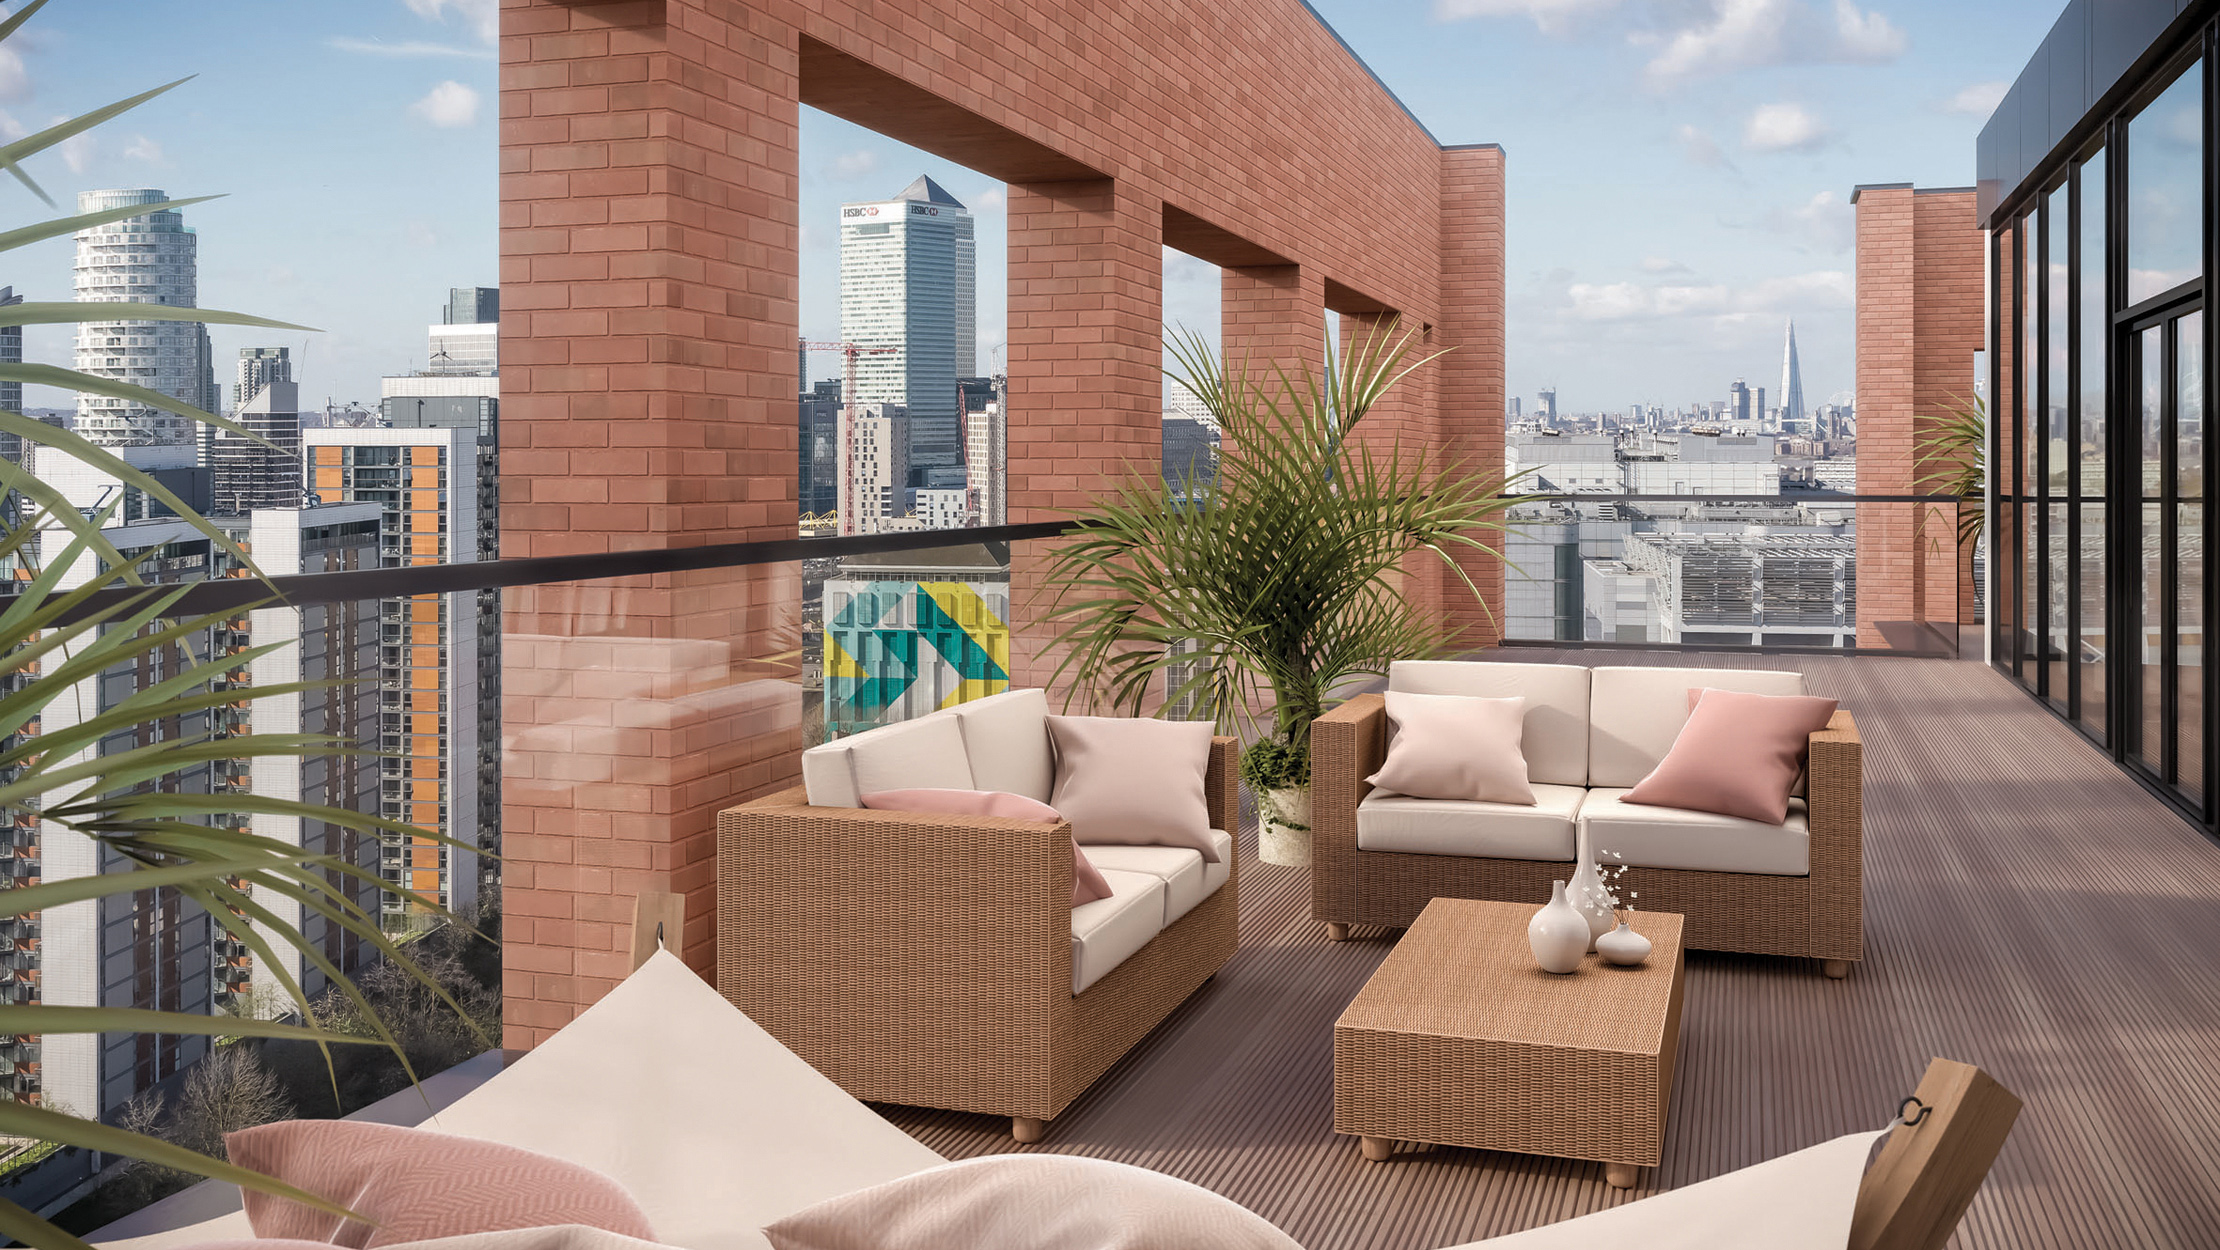 the launch of orchard wharf in the london docklands